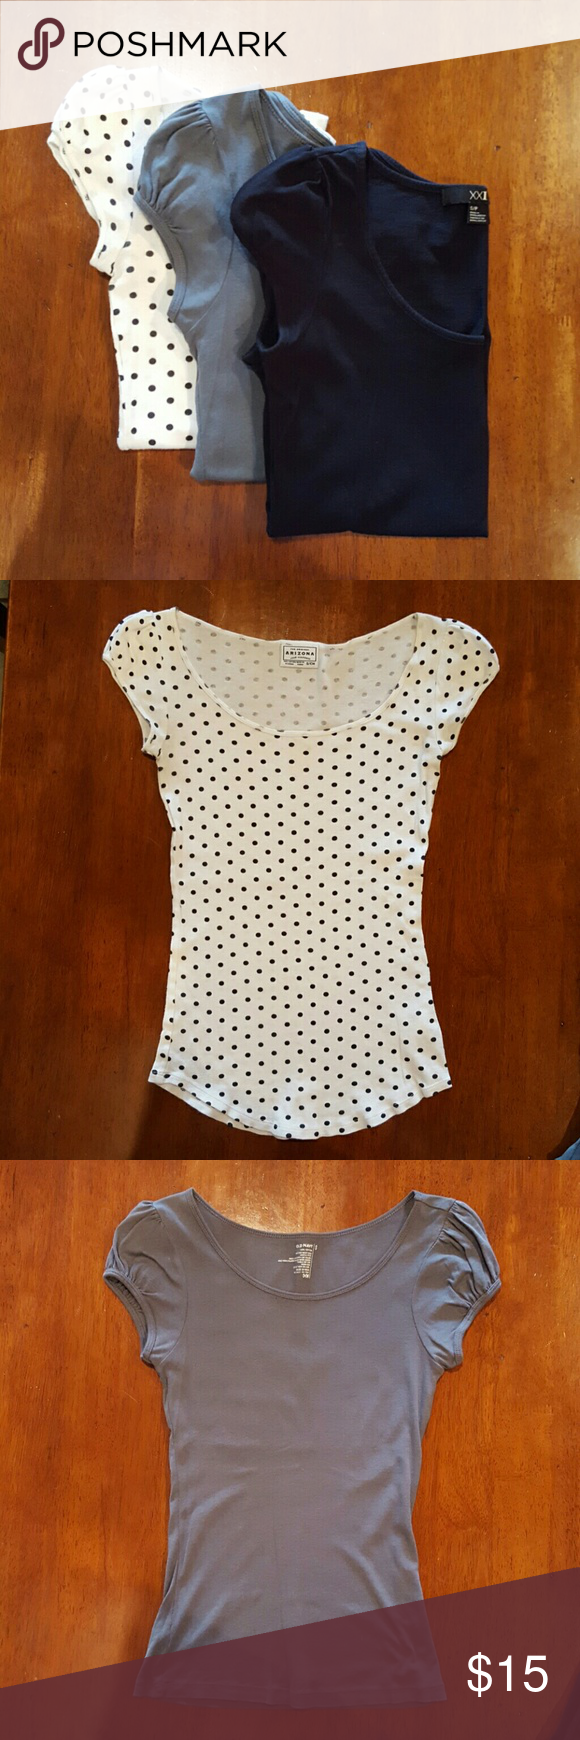 Bundle of three tops Three tops, jet black (Forever 21), steel gray (Old Navy) and white with black polka dots (Arizona Jean Company). All tops are scoop neck, with puffed shoulder short sleeves. All tops are size small. Tops